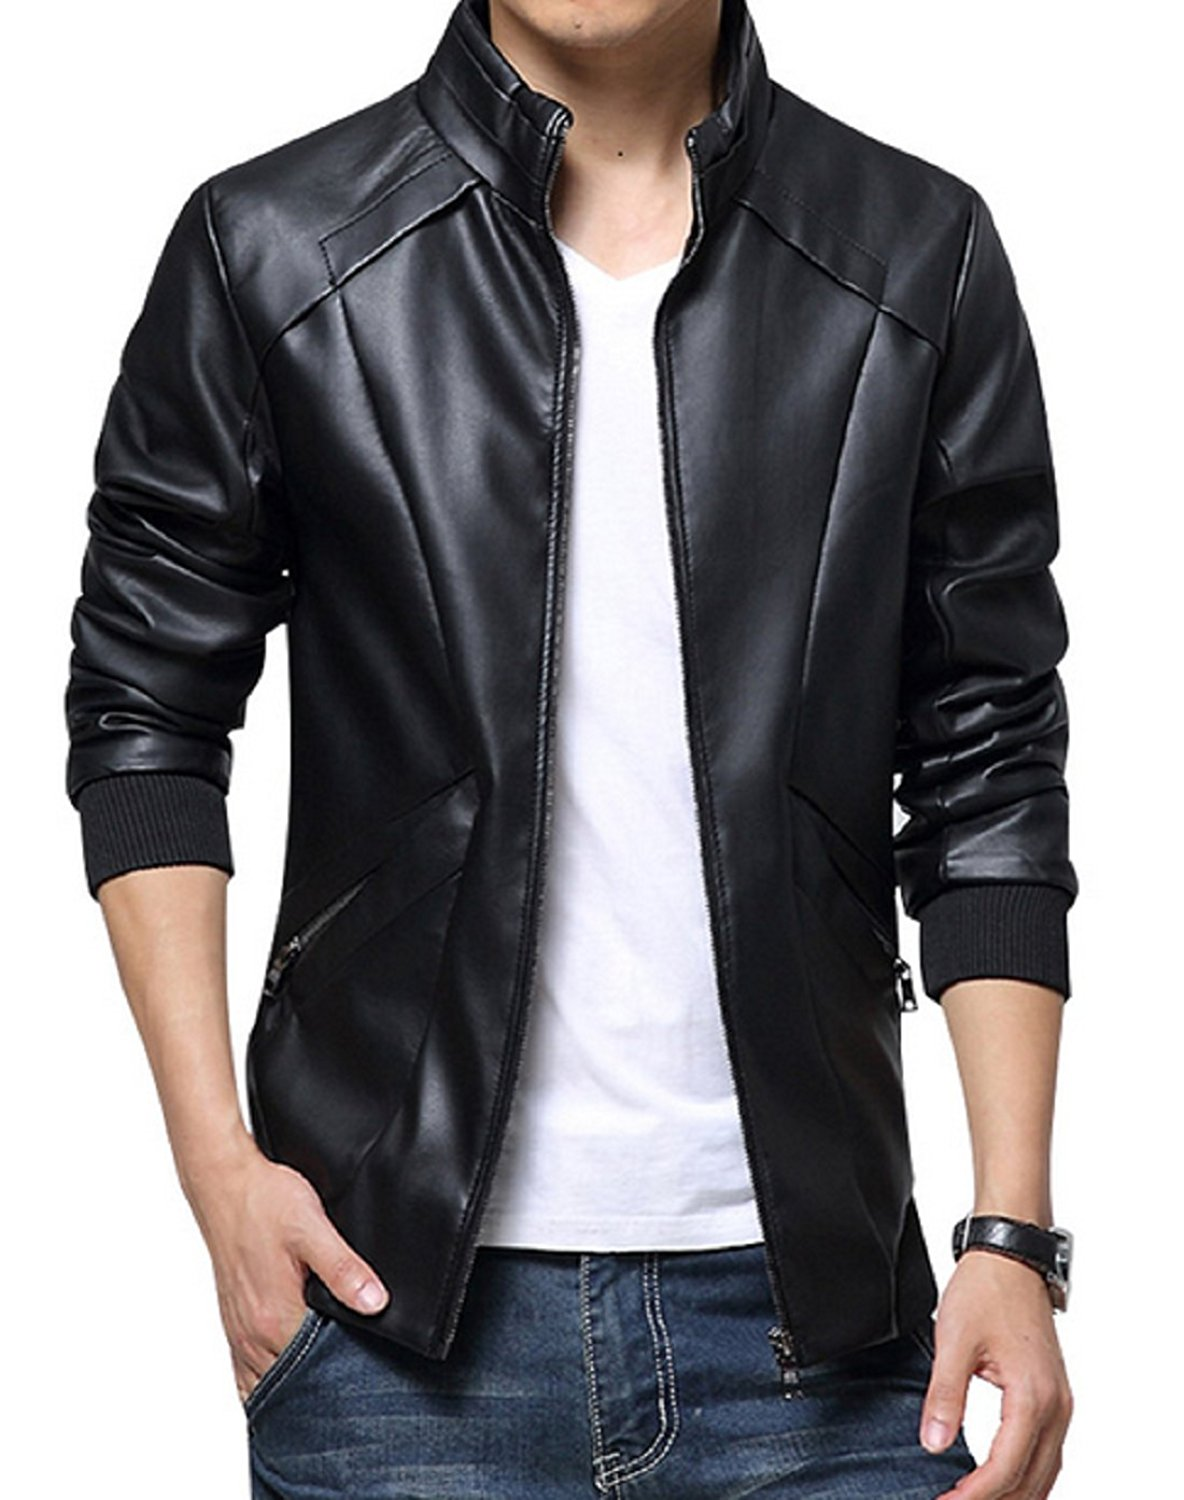 Men's Leather Jackets for Winter 2018 12